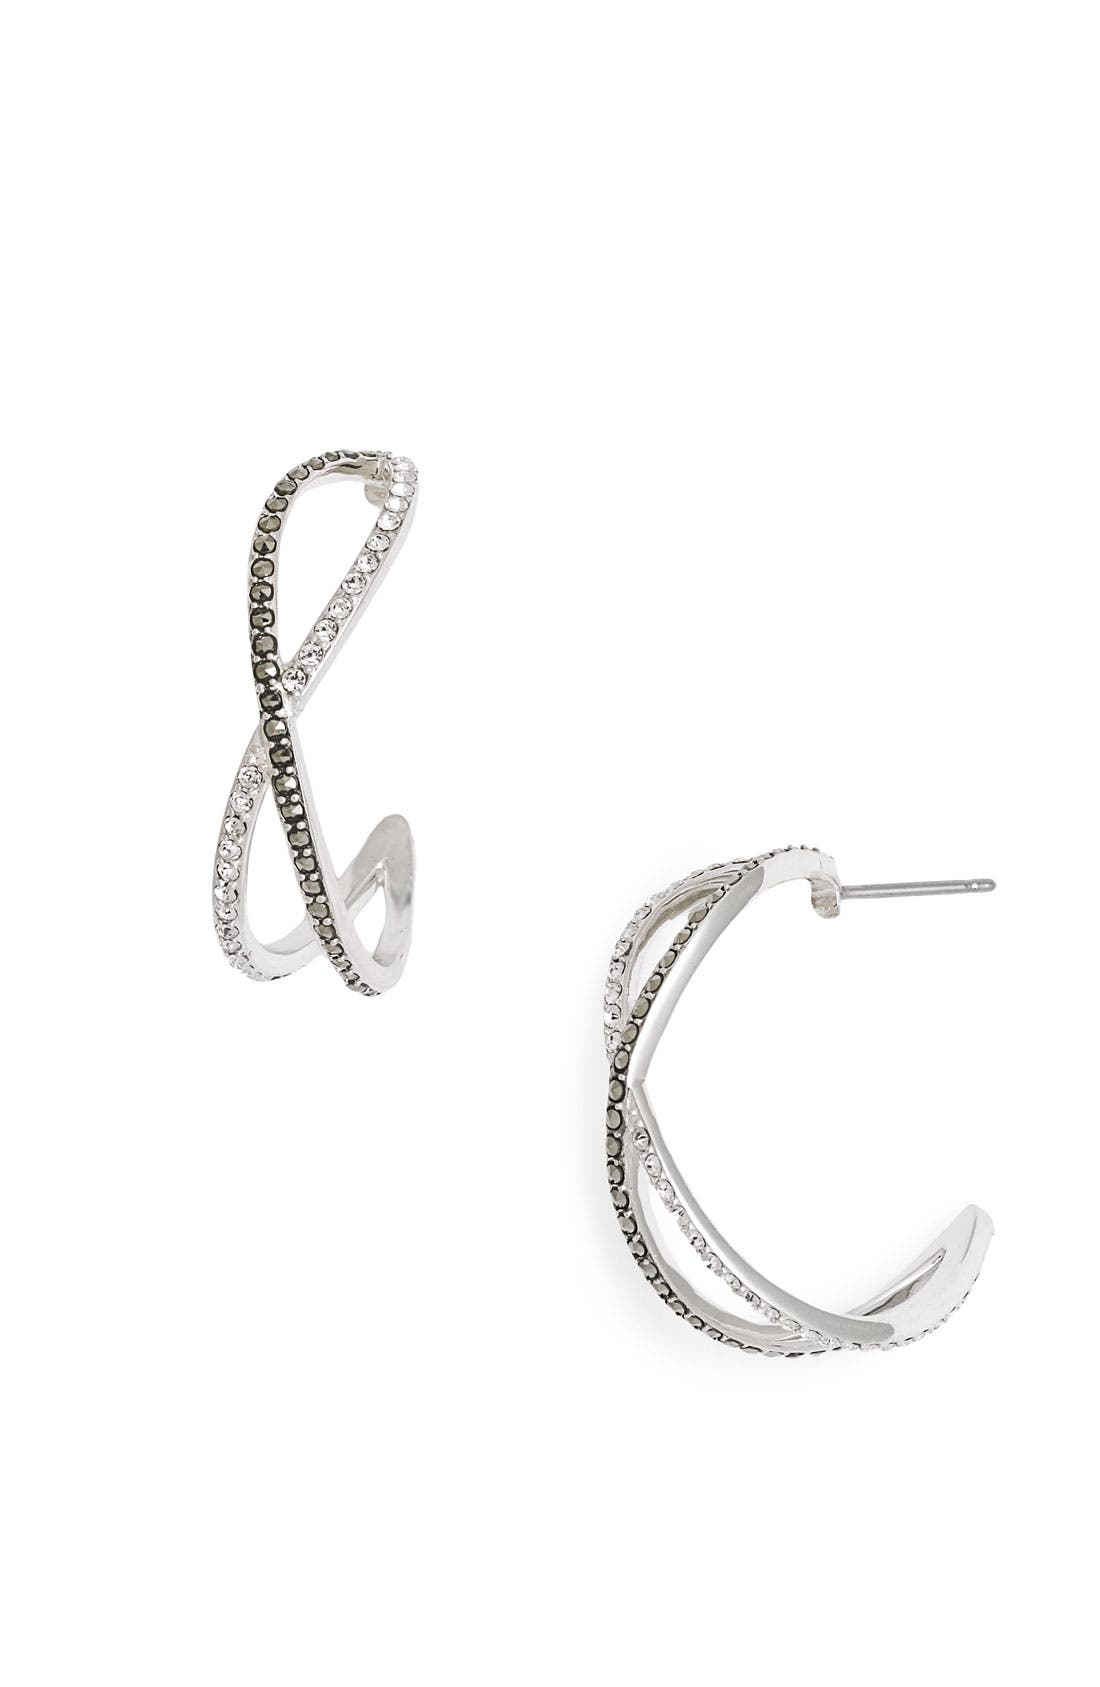 Alternate Image 1 Selected - Judith Jack 'Licorice' Small Hoop Earrings